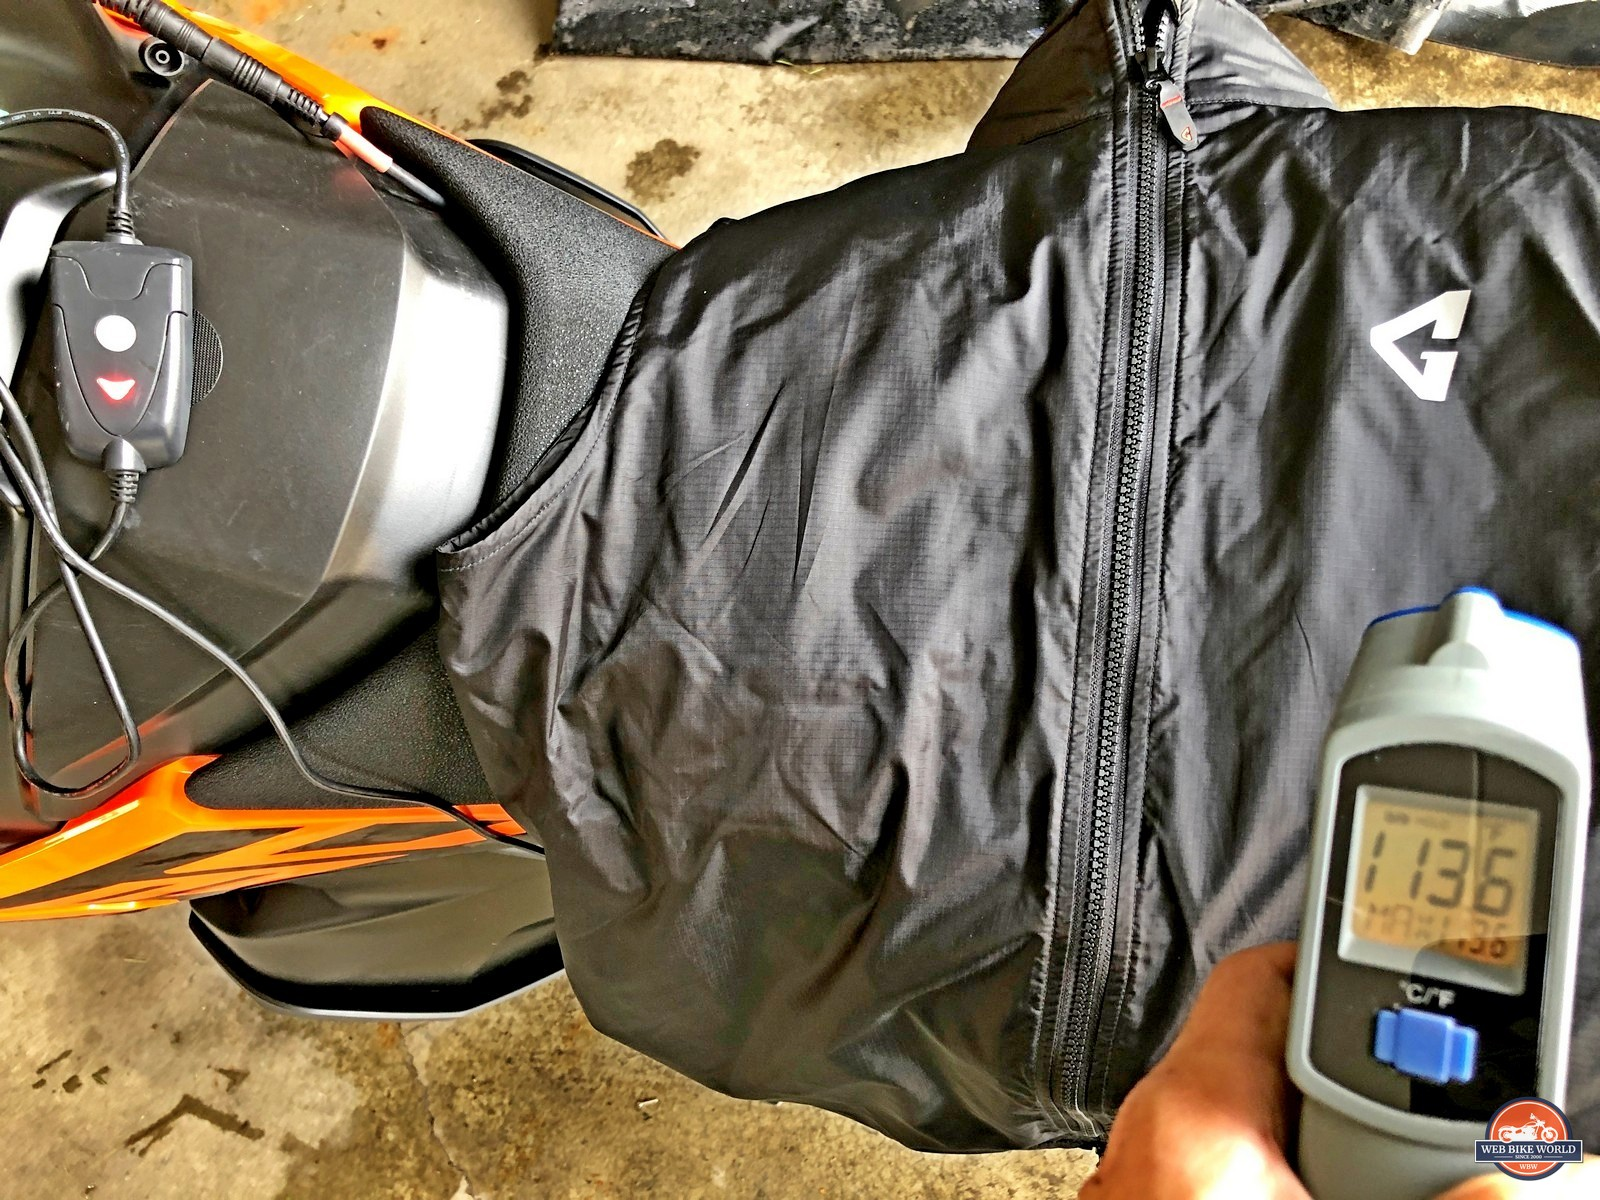 Gerbing Vest heated to 113.6 degrees F